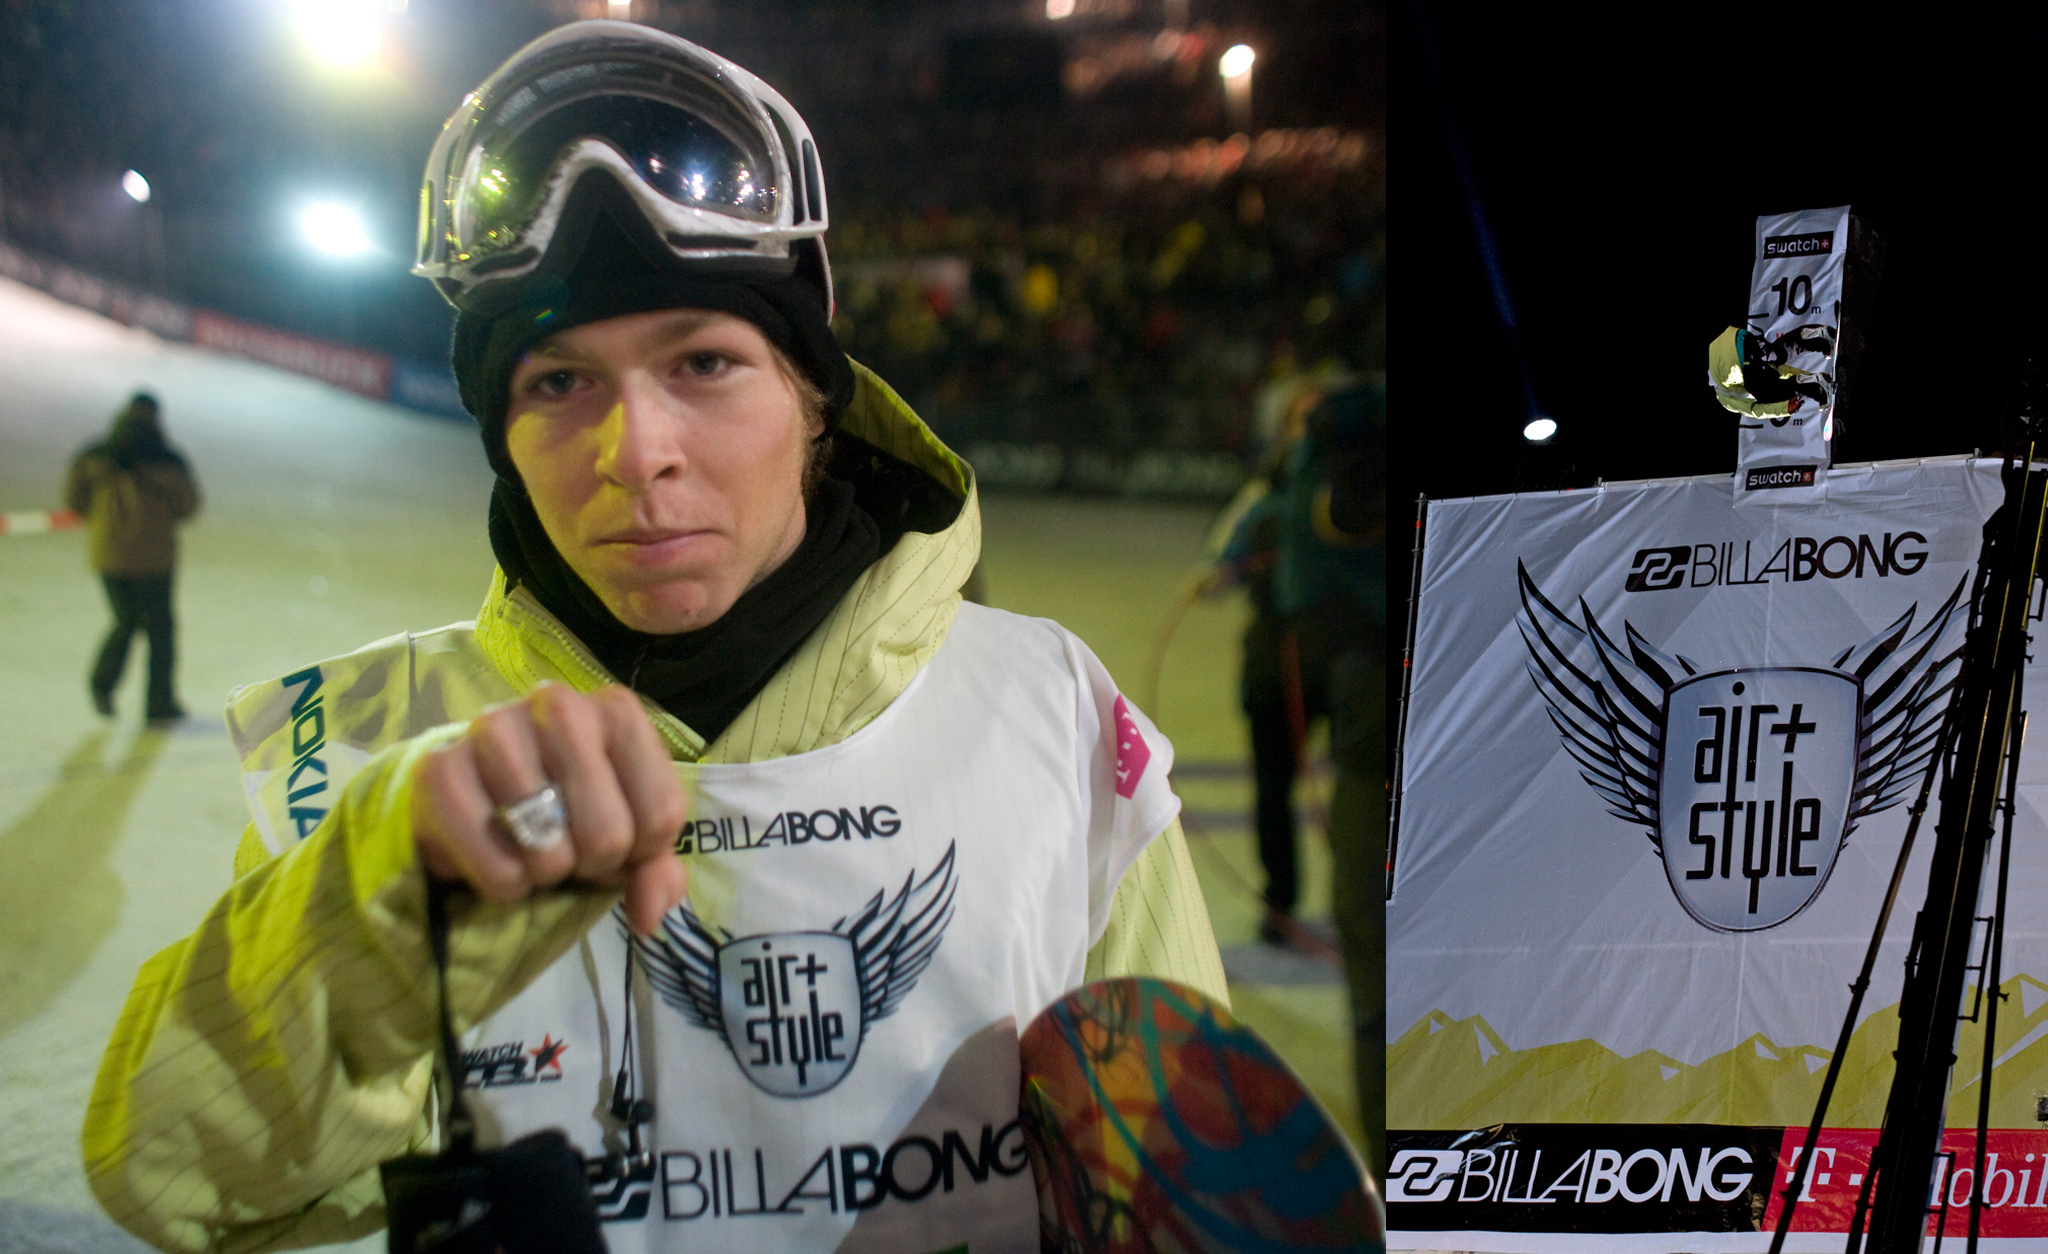 February 2008, Innsbruck<br> Winner: Kevin Pearce